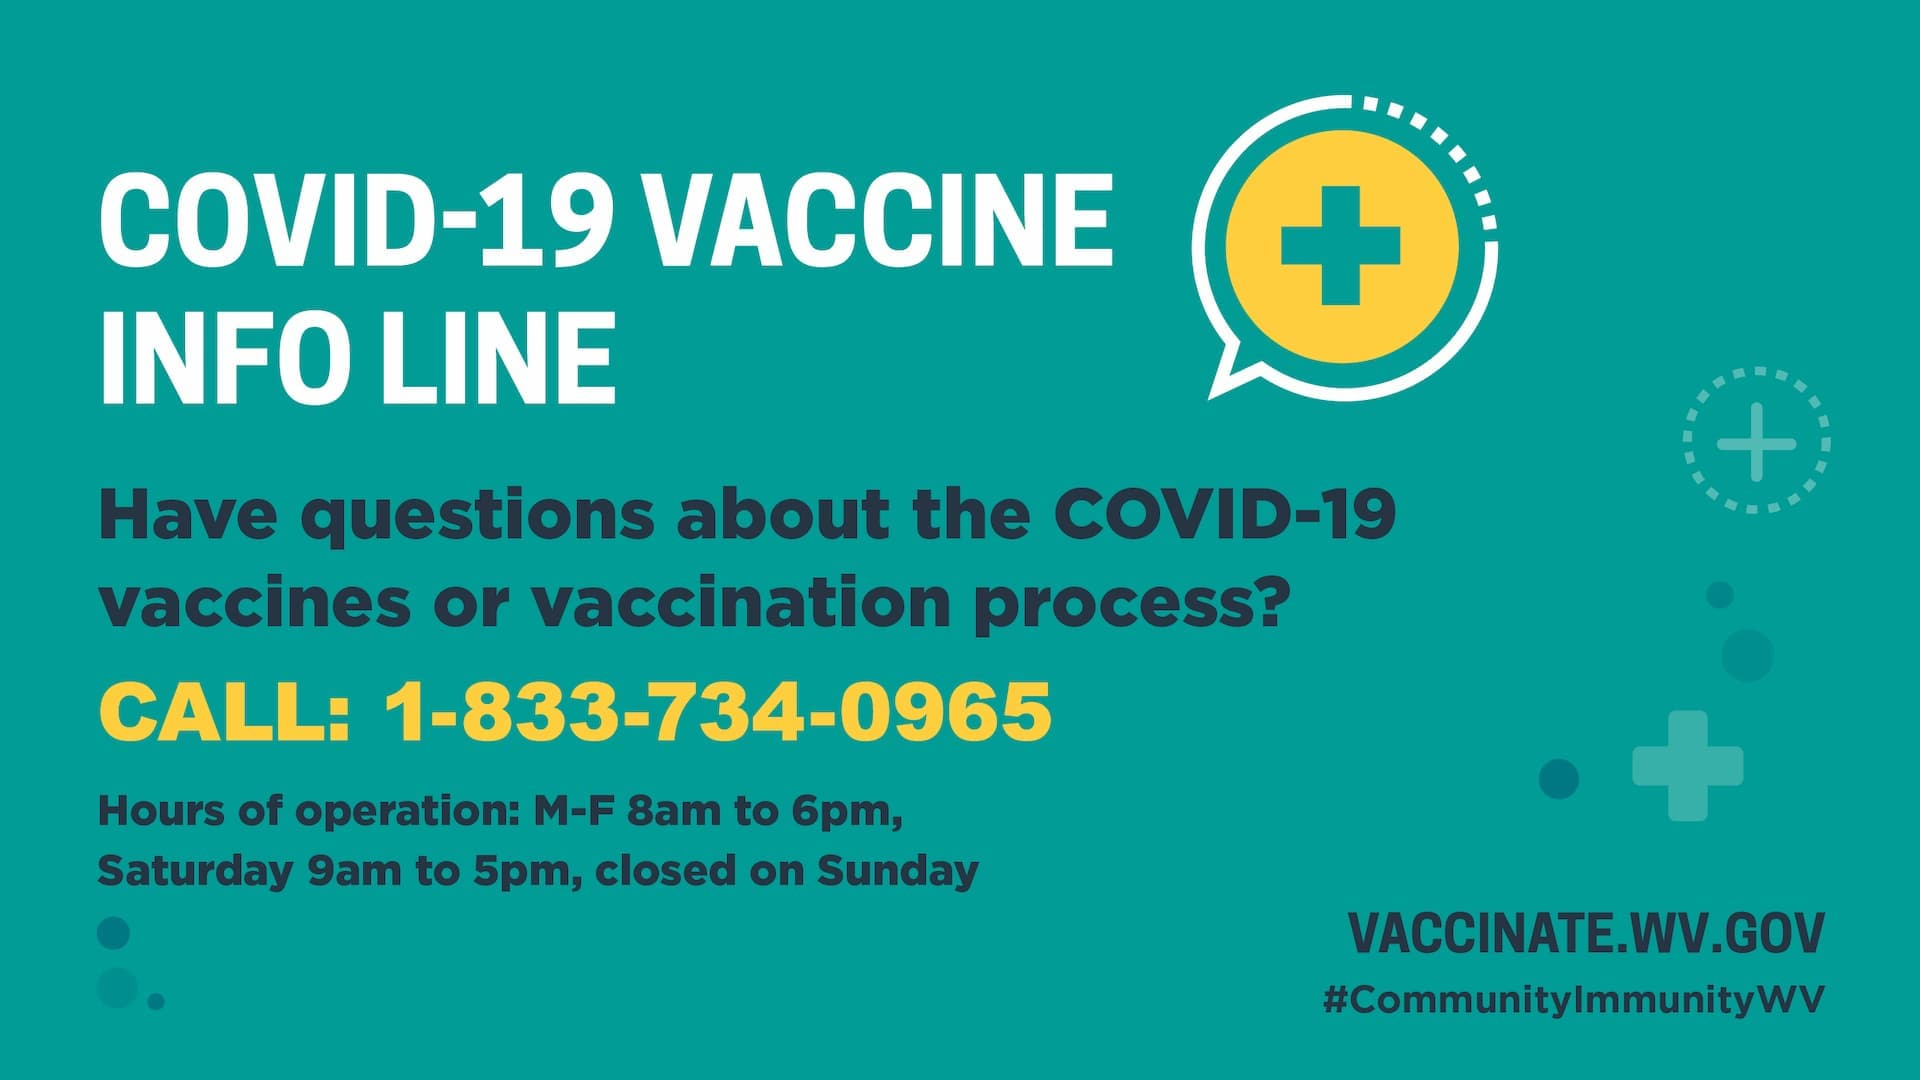 Call 1-833-734-0965 for COVID-19 Vaccine Information